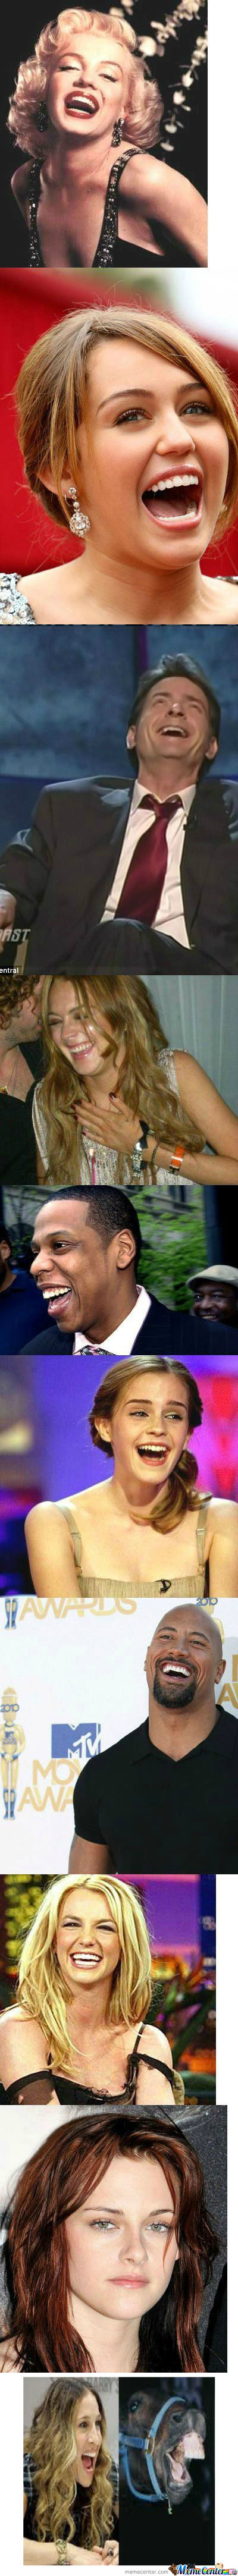 [RMX] How Celebrities Laugh